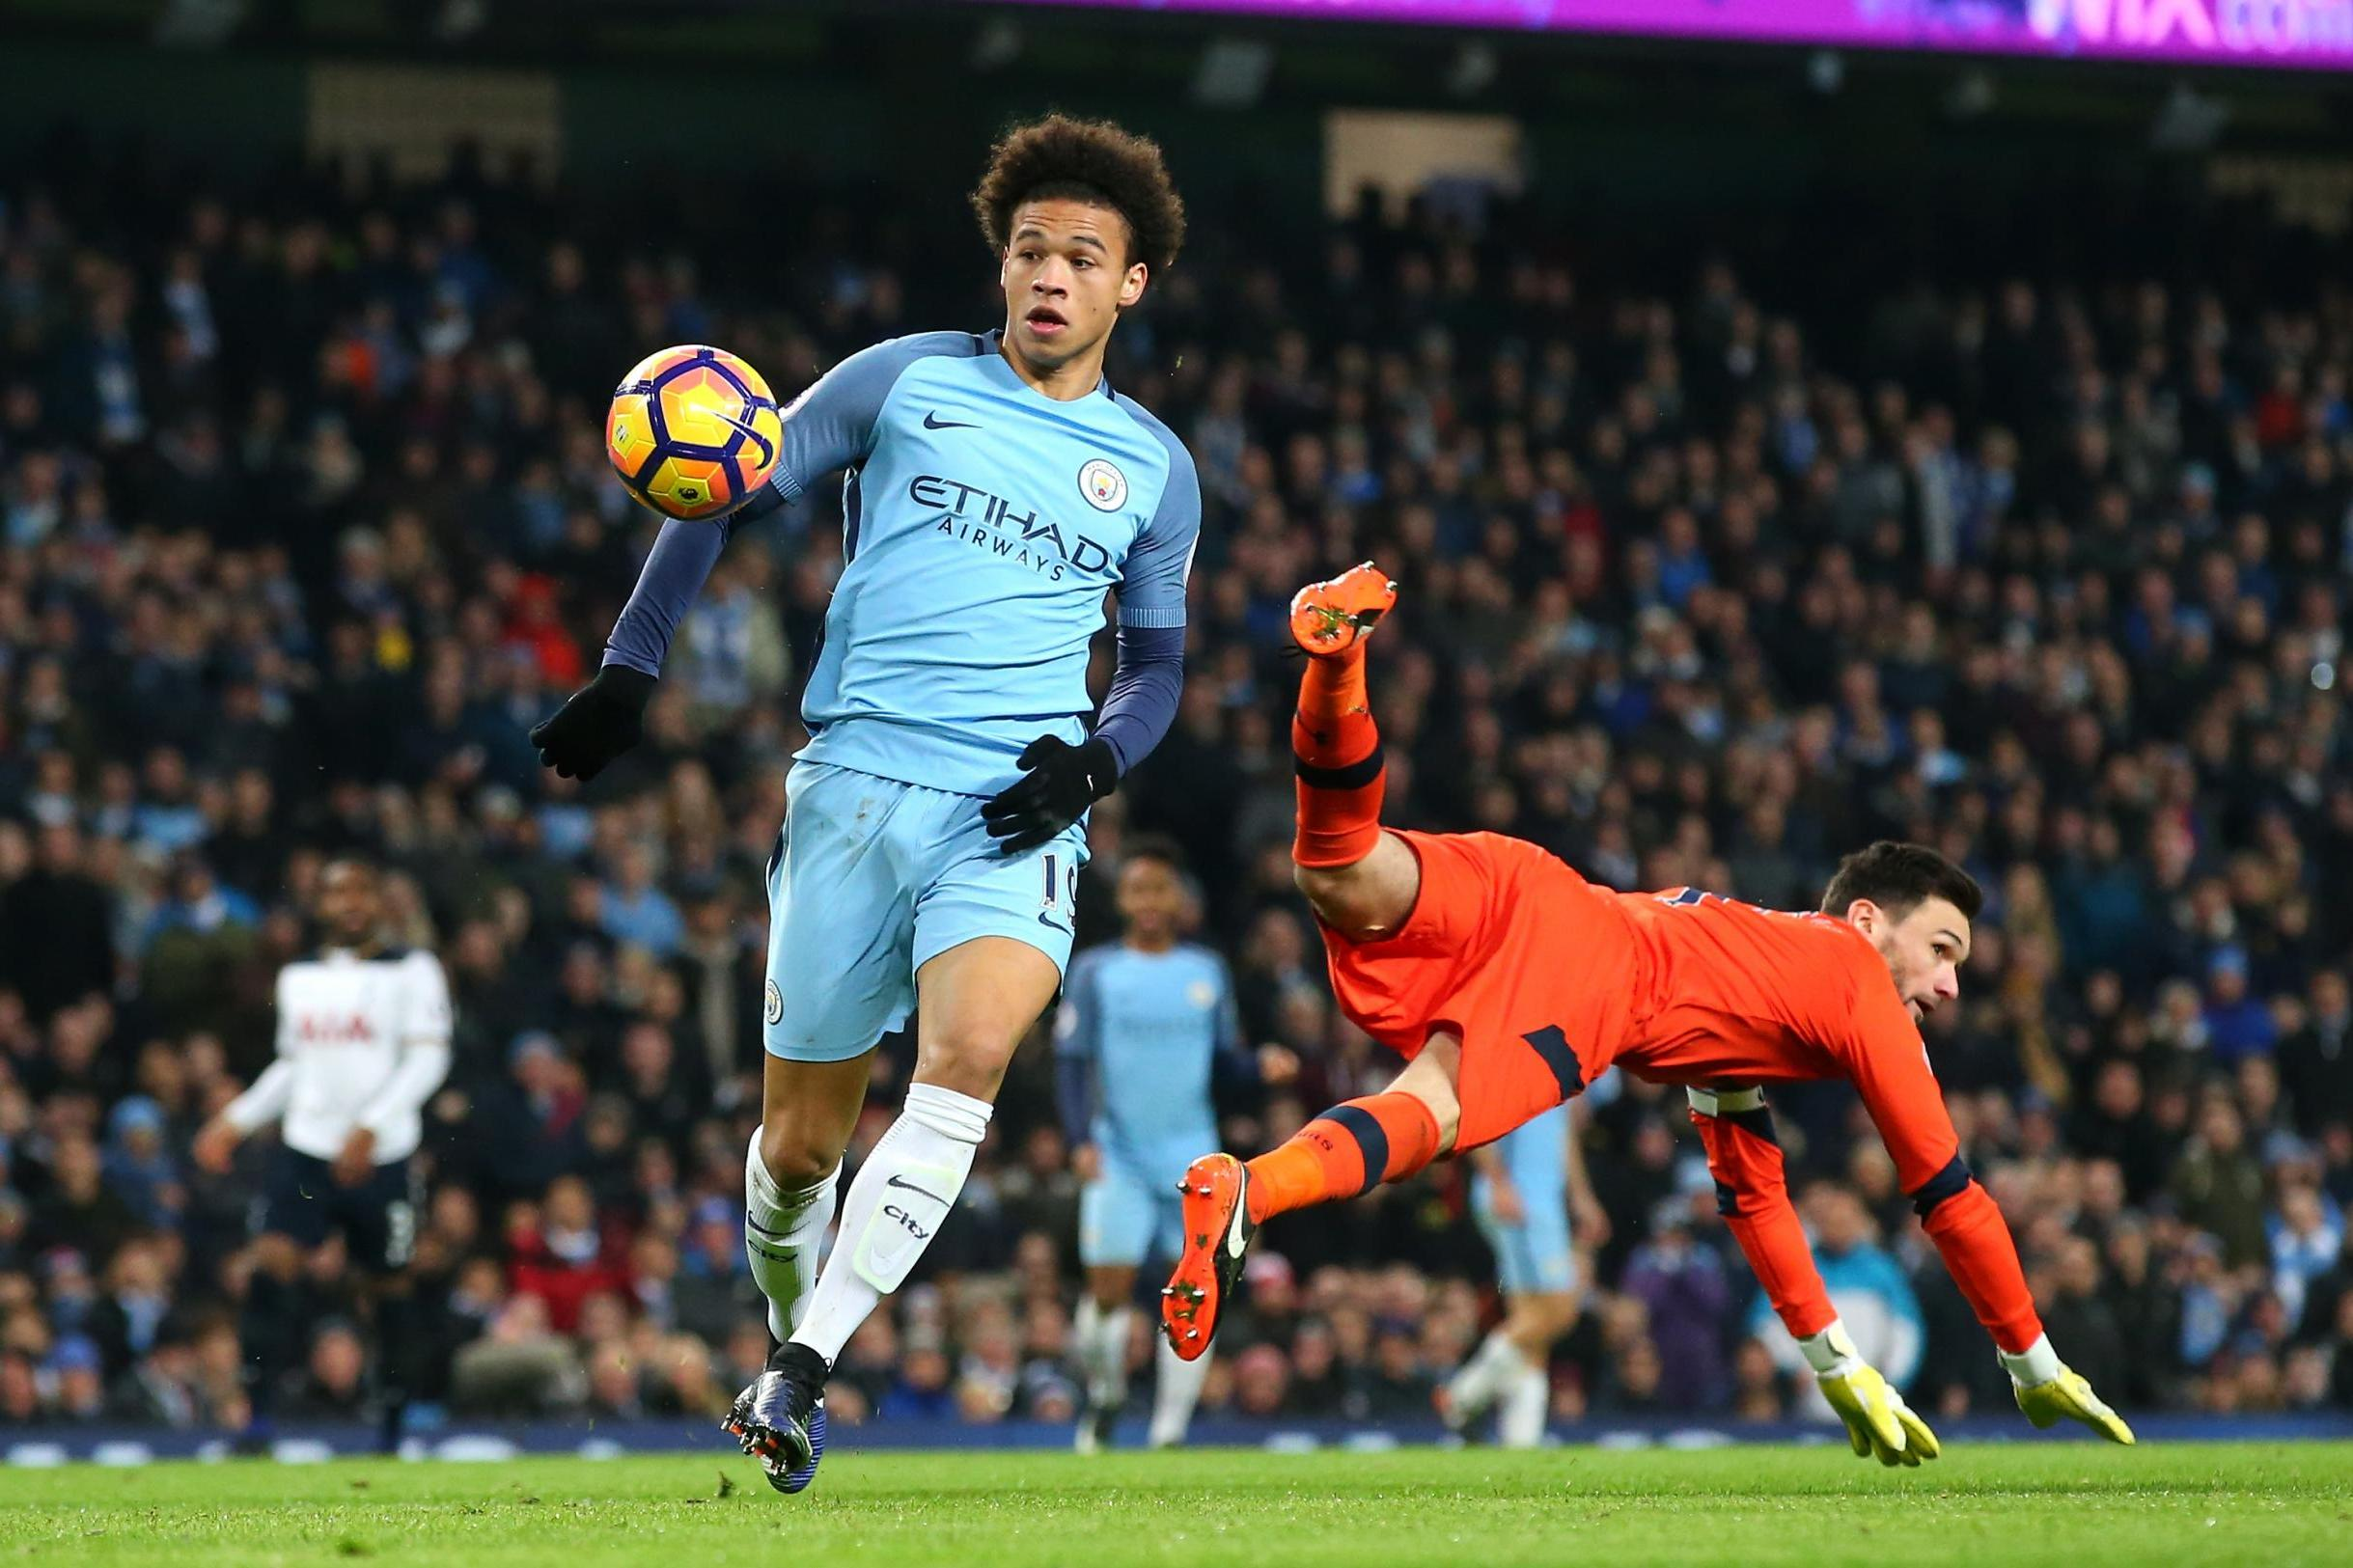 Leroy Sane is beginning to show why City paid £37m for him last summer and why Pep rates him so highly.